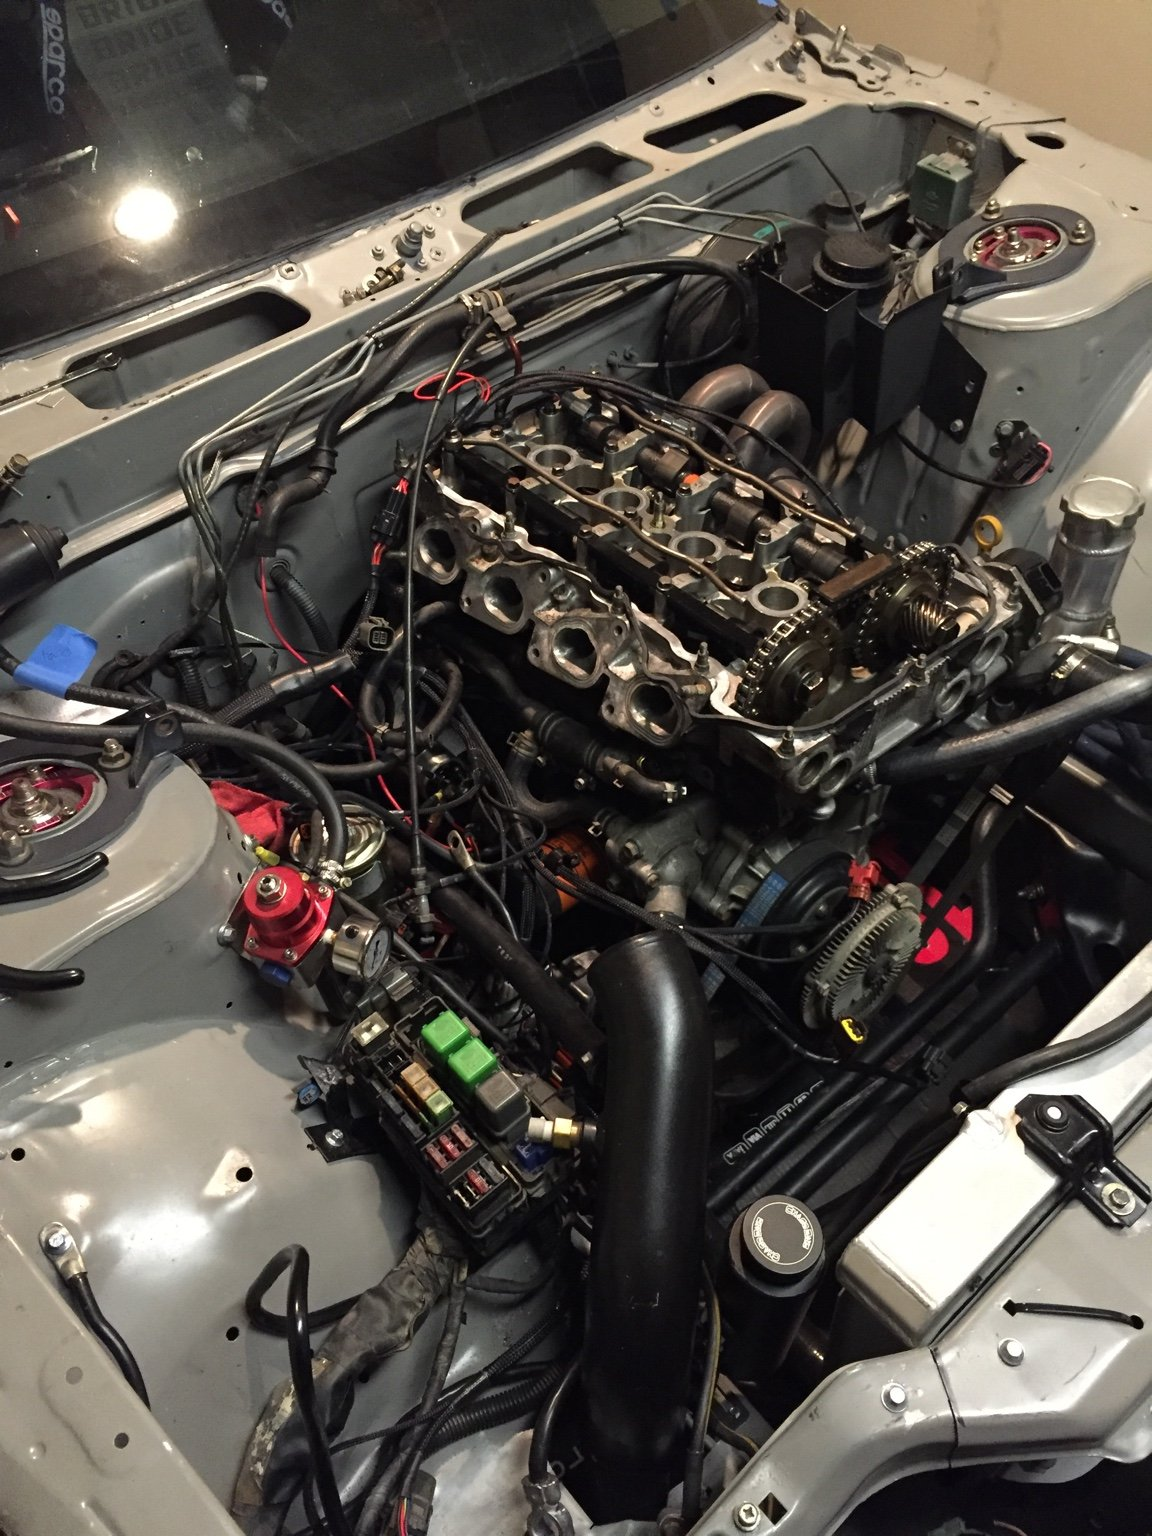 Va S13 Sr20 Engine Part Outgreddy Garrett Isr Aem Etc Wiring Specialties Sr20det Crank If Good Which I Believe It Is Asking 10000 Head Tbd No But Filled With Bc Springs Retainers 1 Retainer Looks Damaged Everything On